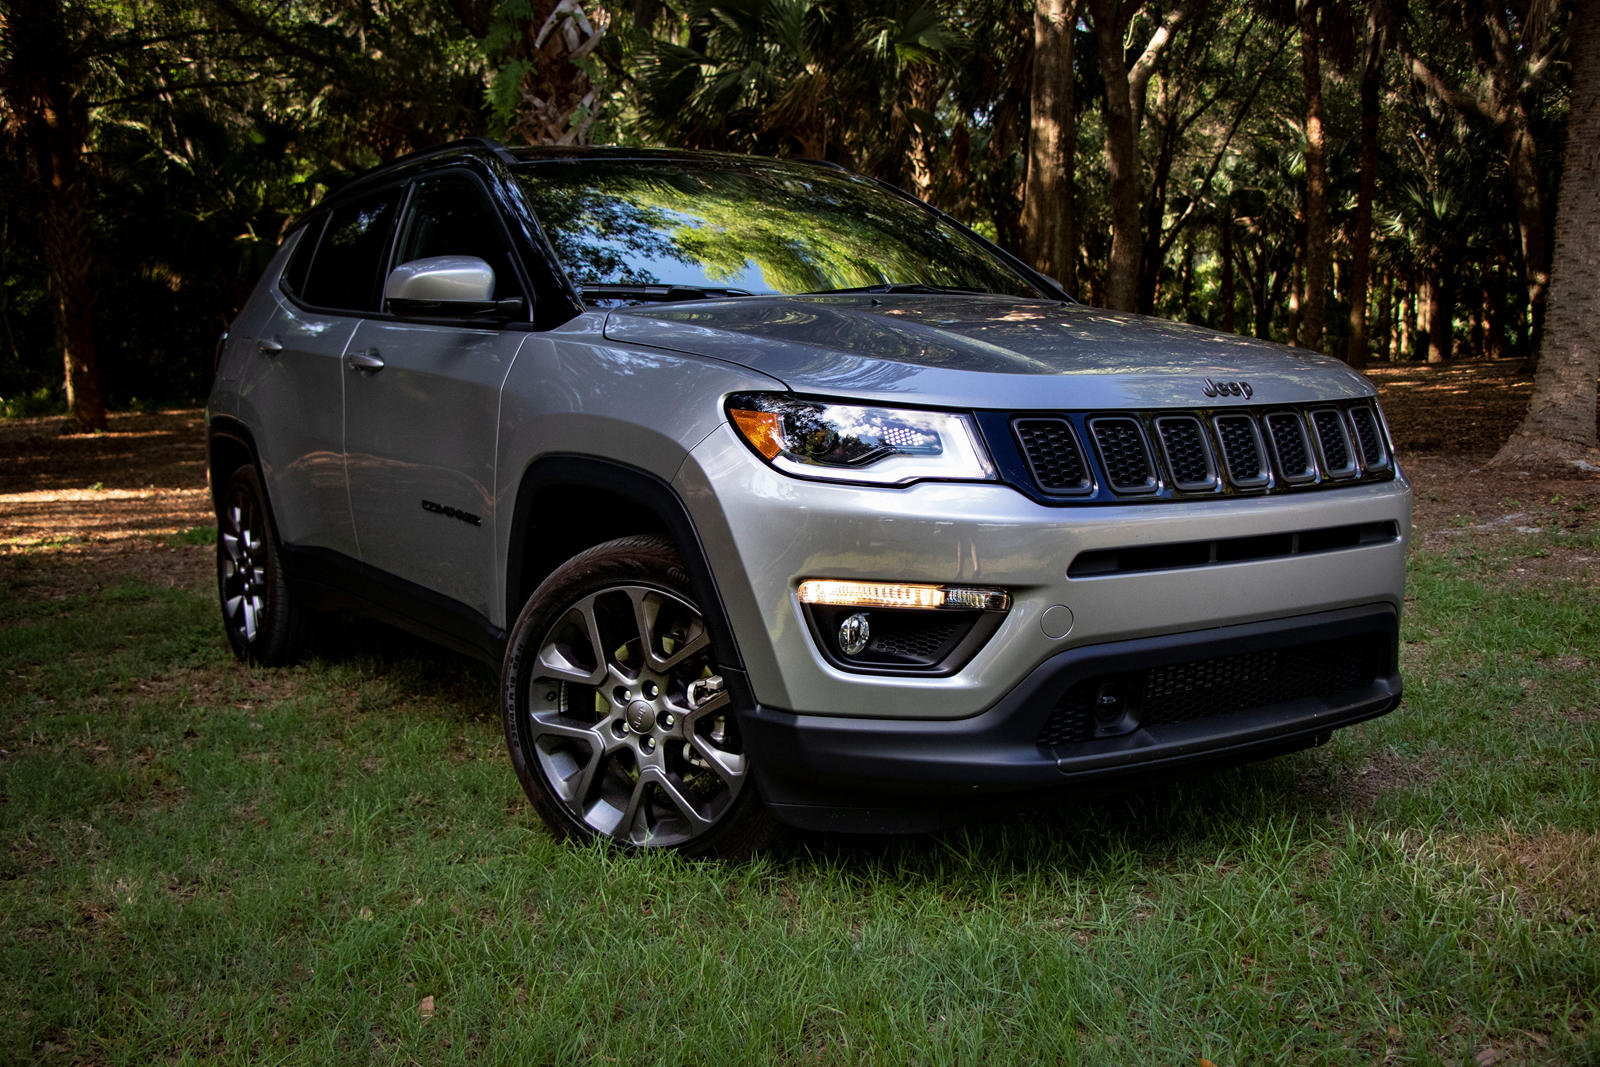 2020 Jeep Compass Review Trims Specs Price New Interior Features Exterior Design And Specifications Carbuzz